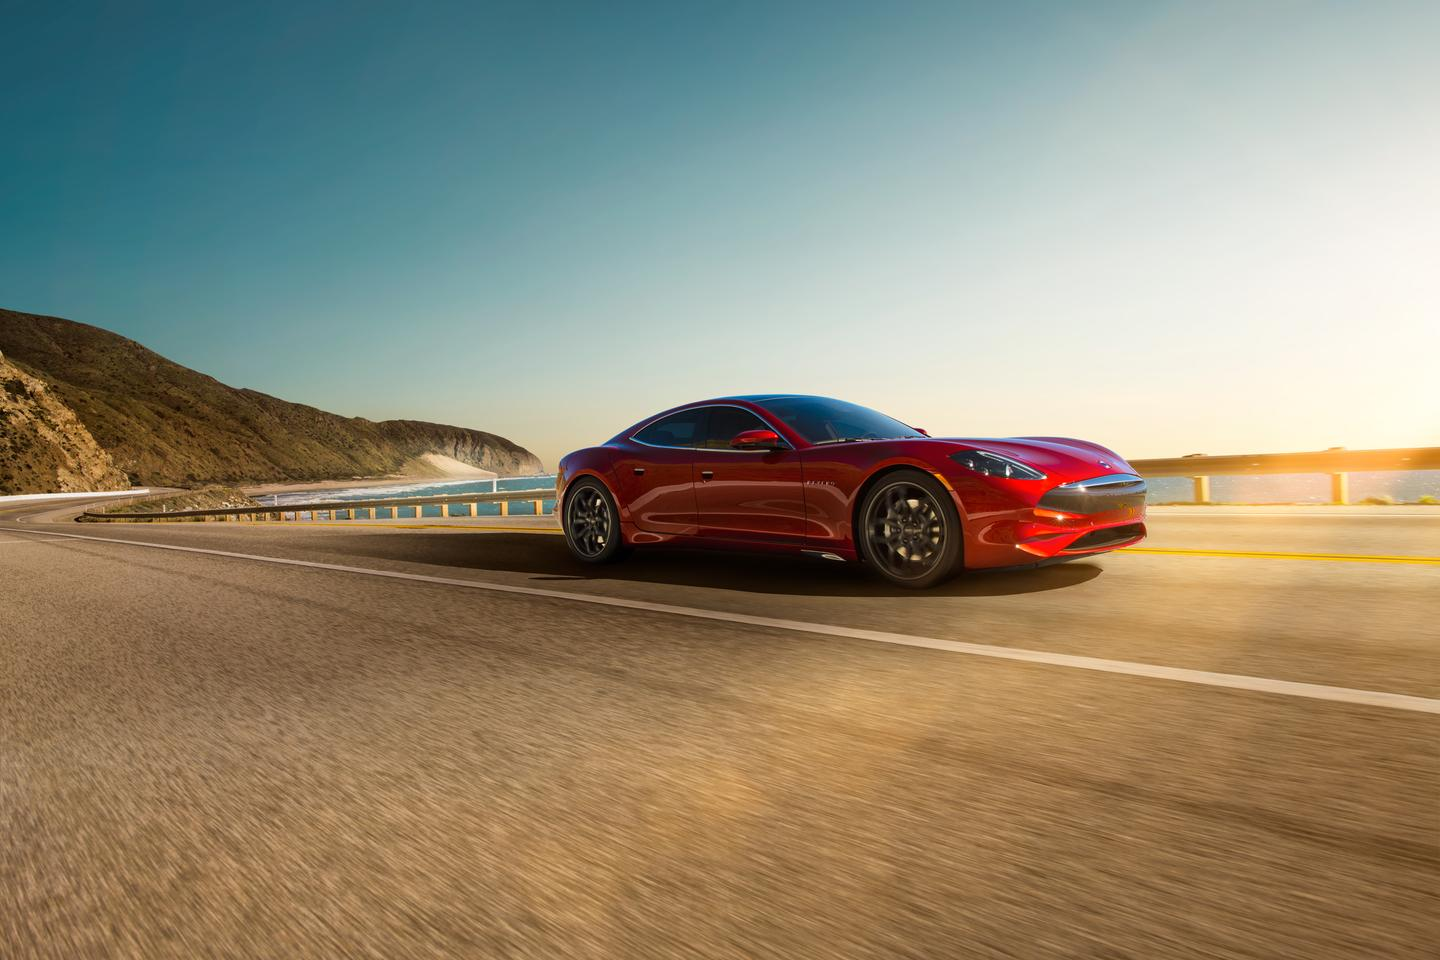 Sennheiser has installed a special version of its Ambeo immersive sound technology into a Karma Revero GT, and will showcase the system during Moterey Car Week